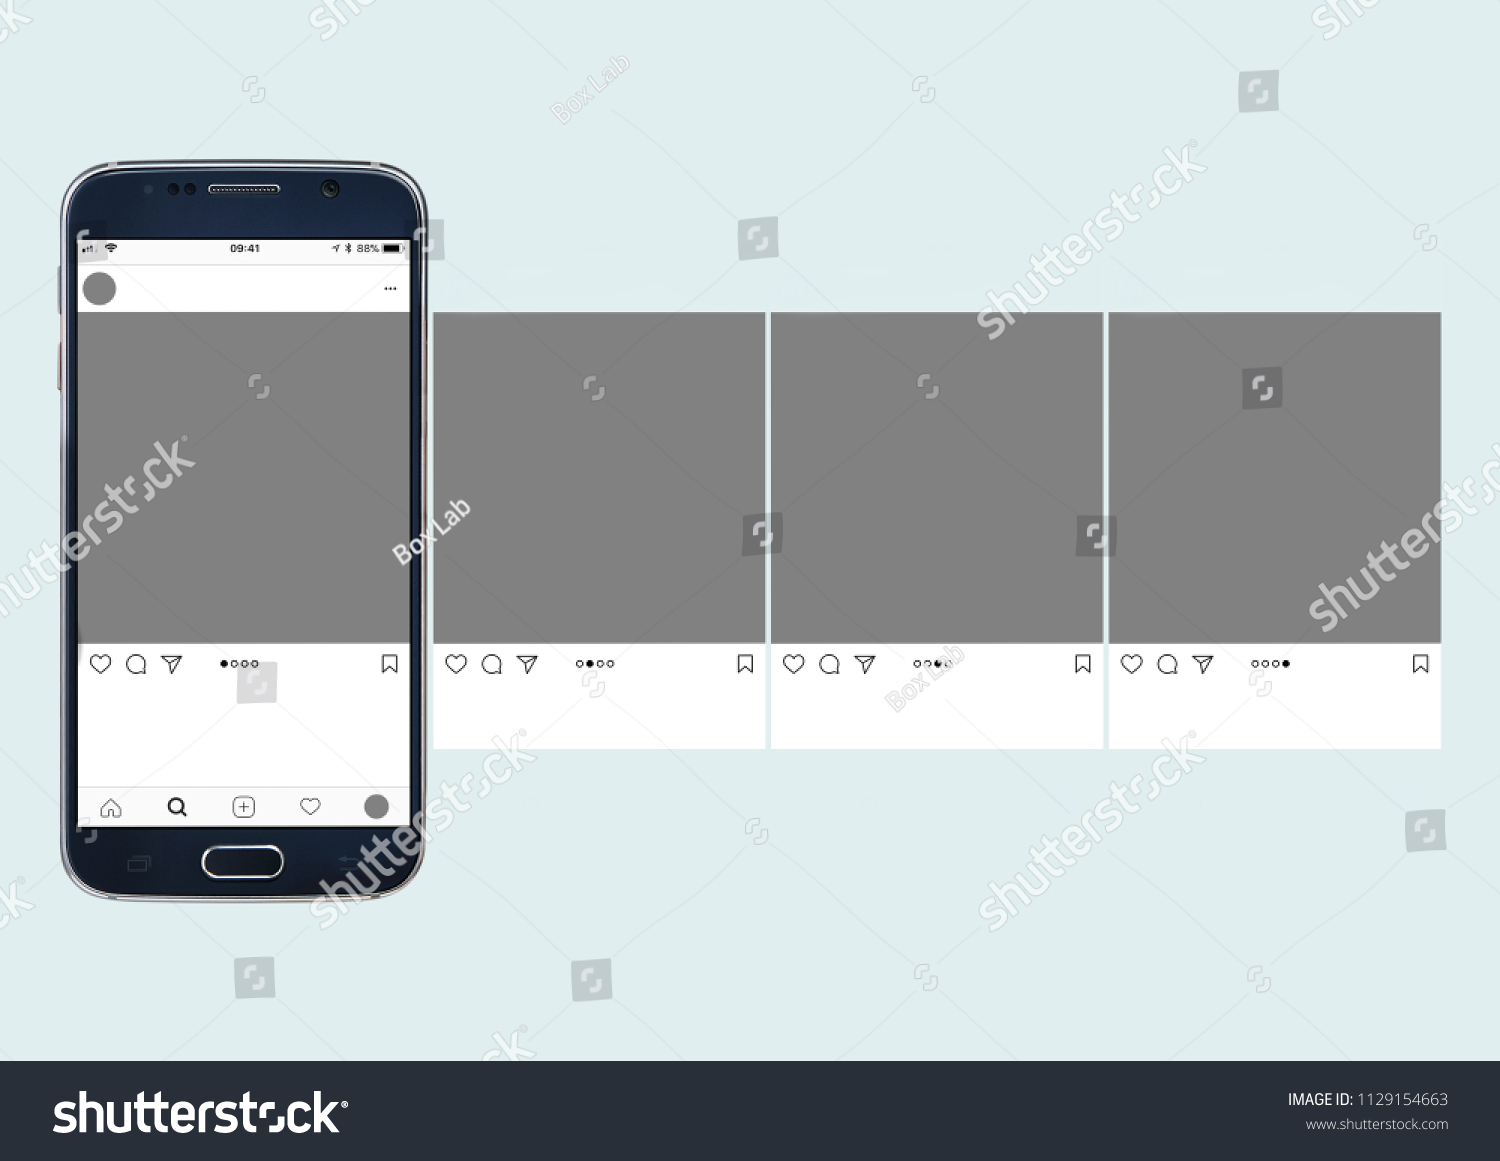 carousel post on social media mockup with cellphone and white background. #1129154663